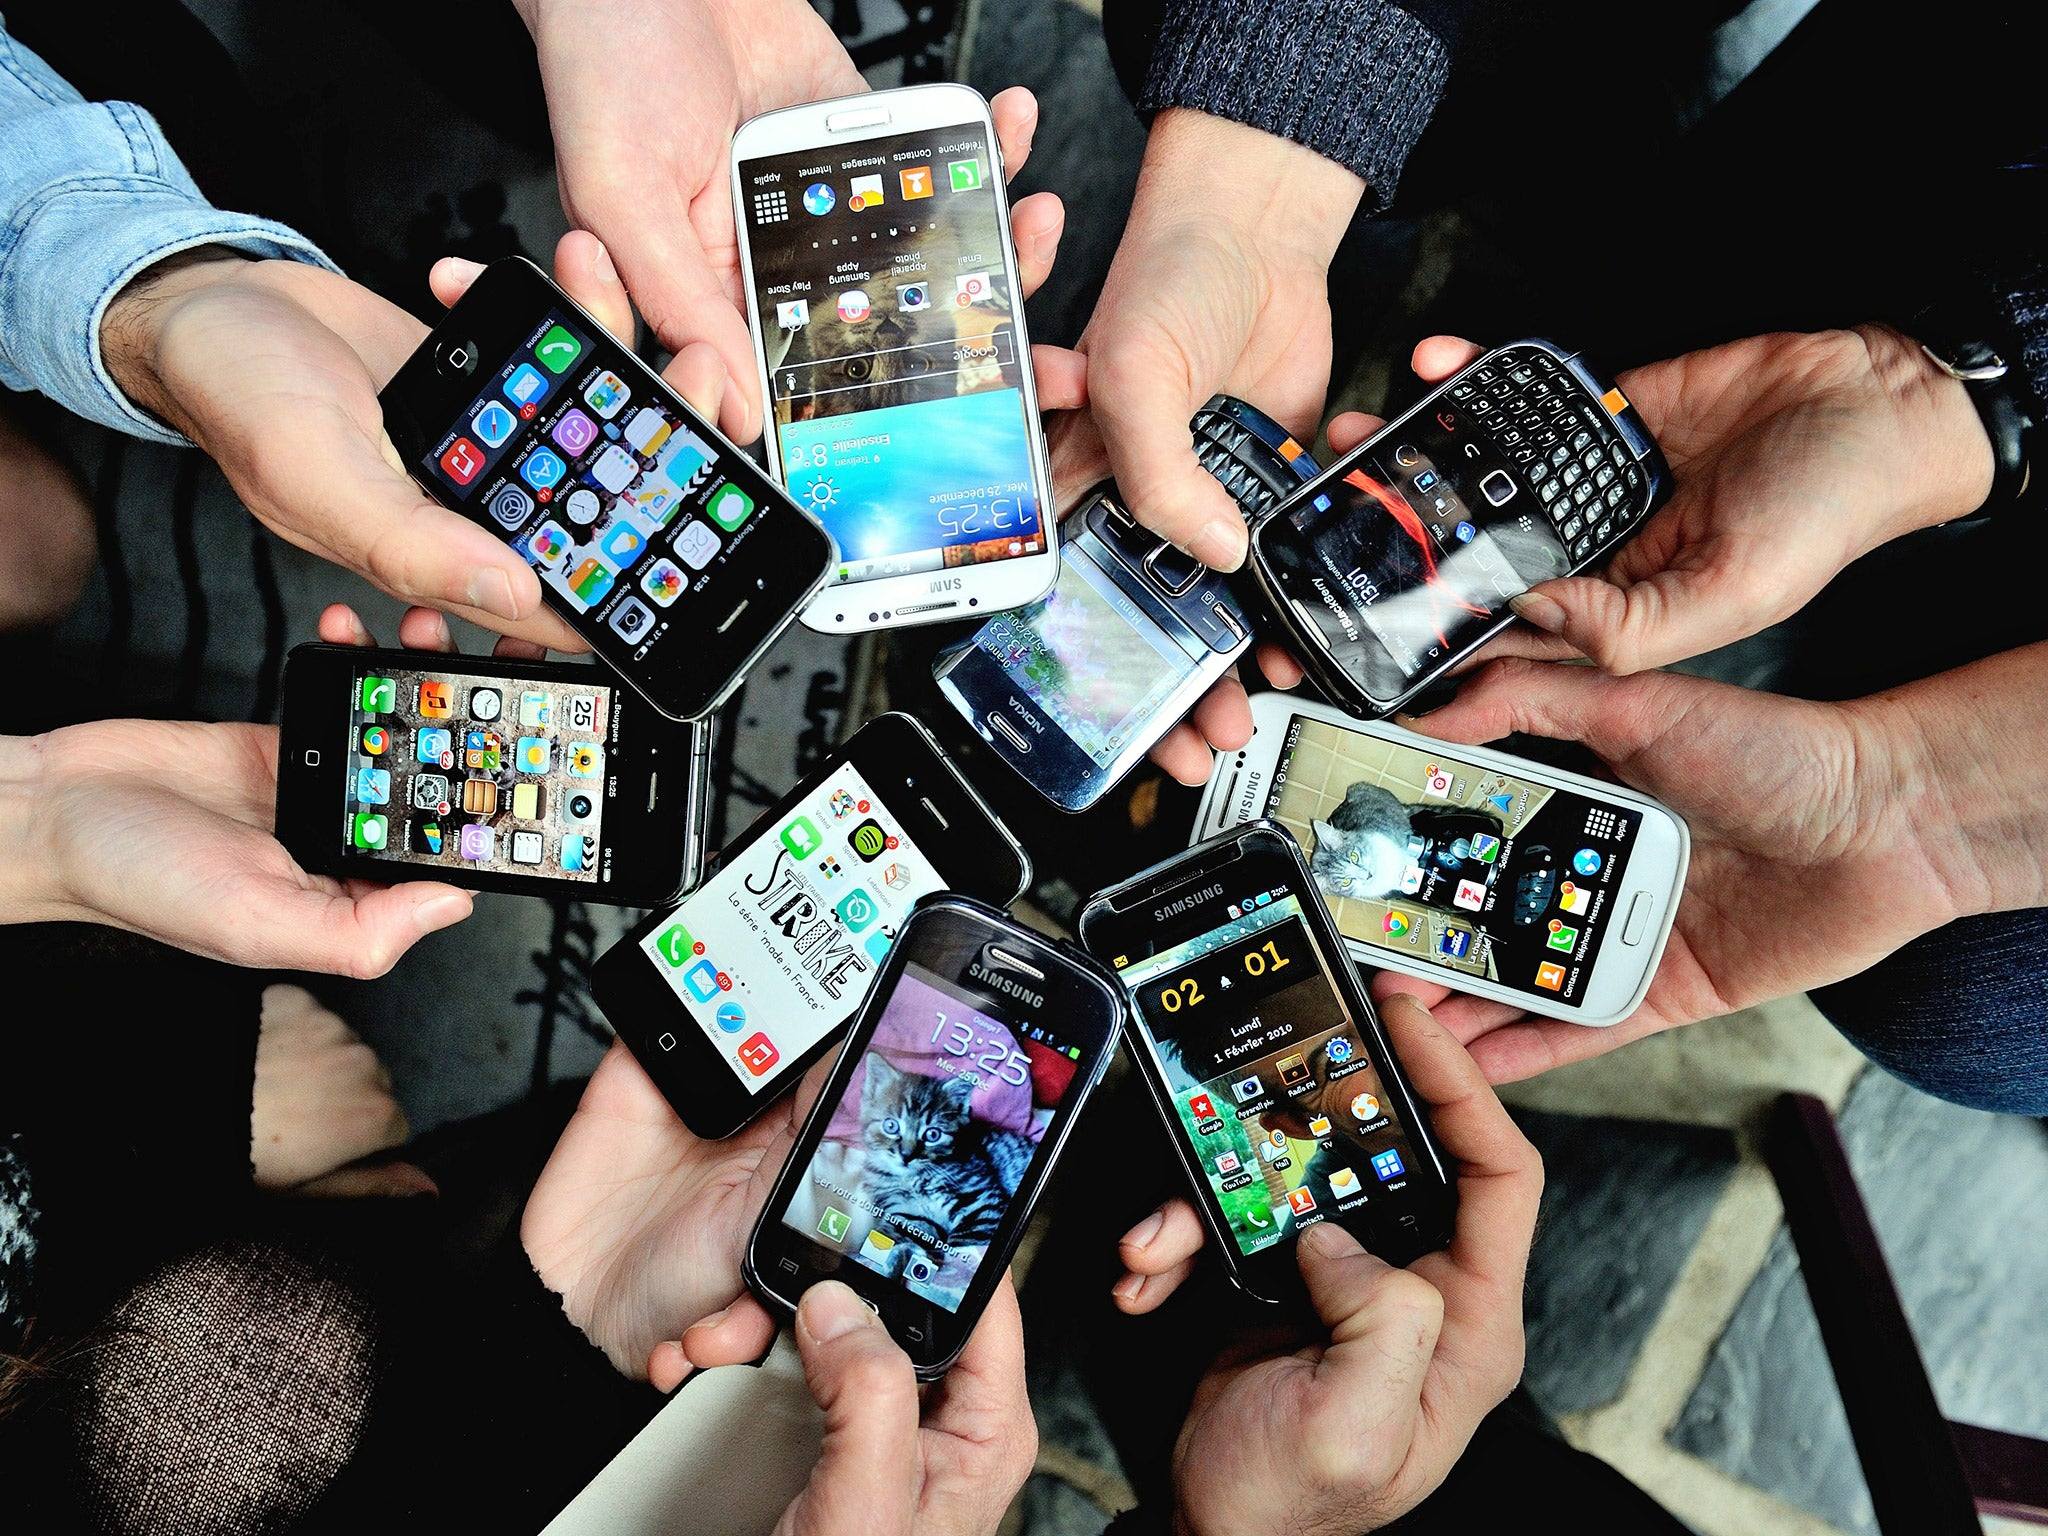 Half of the adult population admit to being hooked on their smartphones